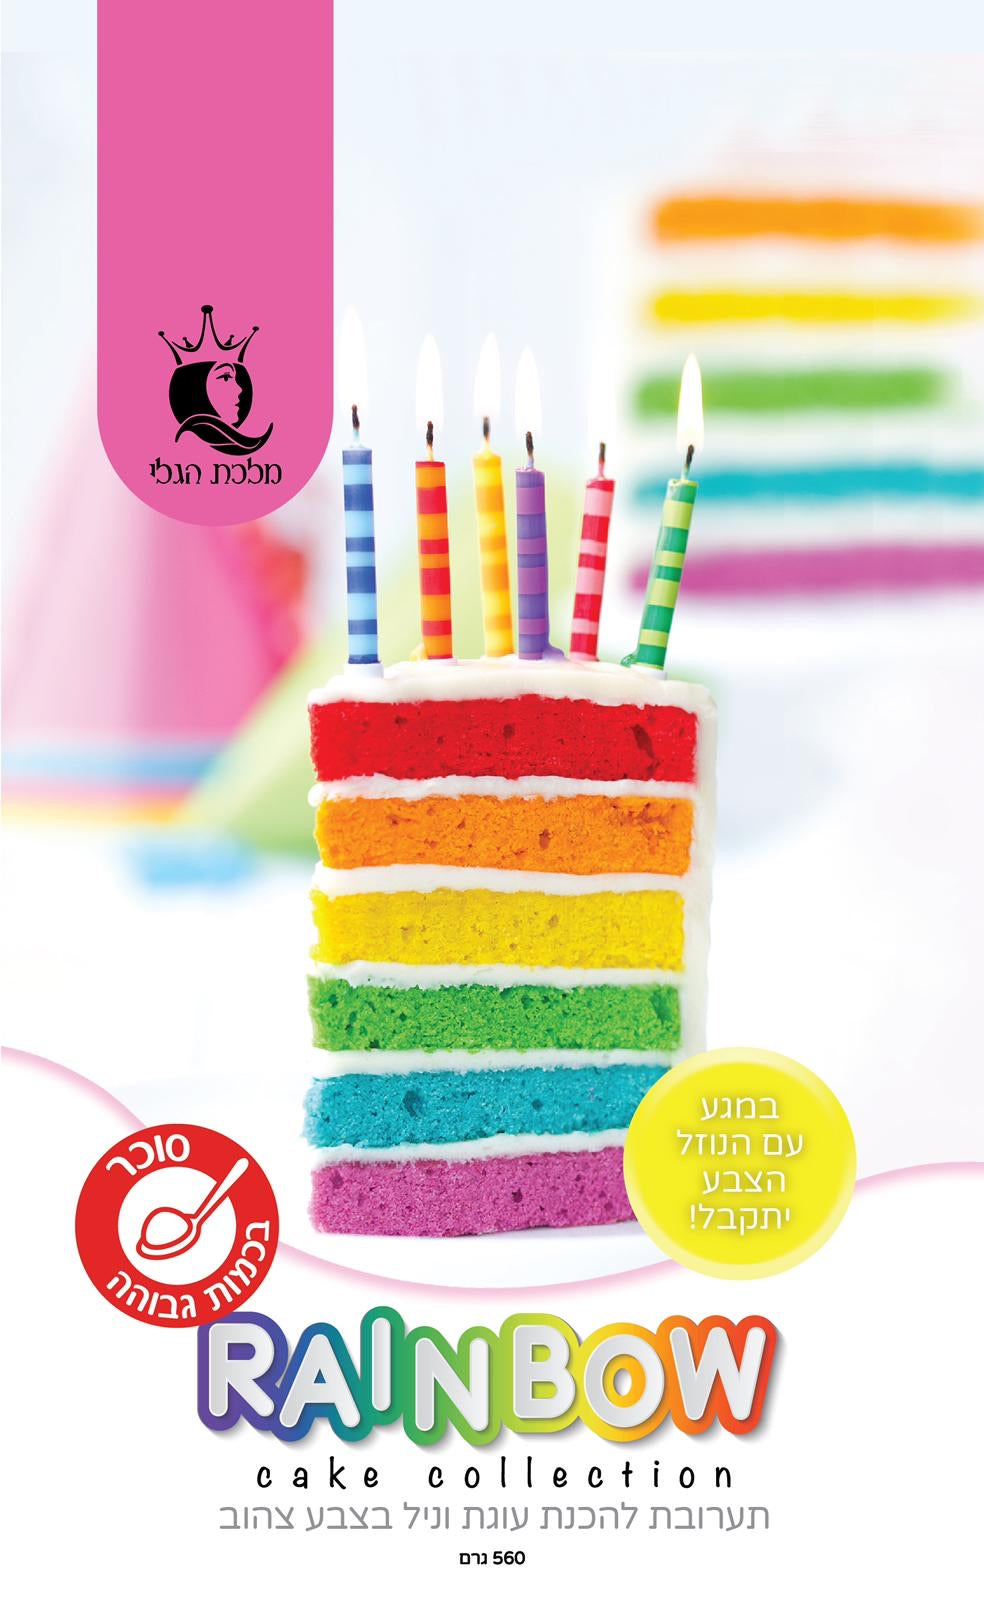 Rainbow Cake collection - צהוב